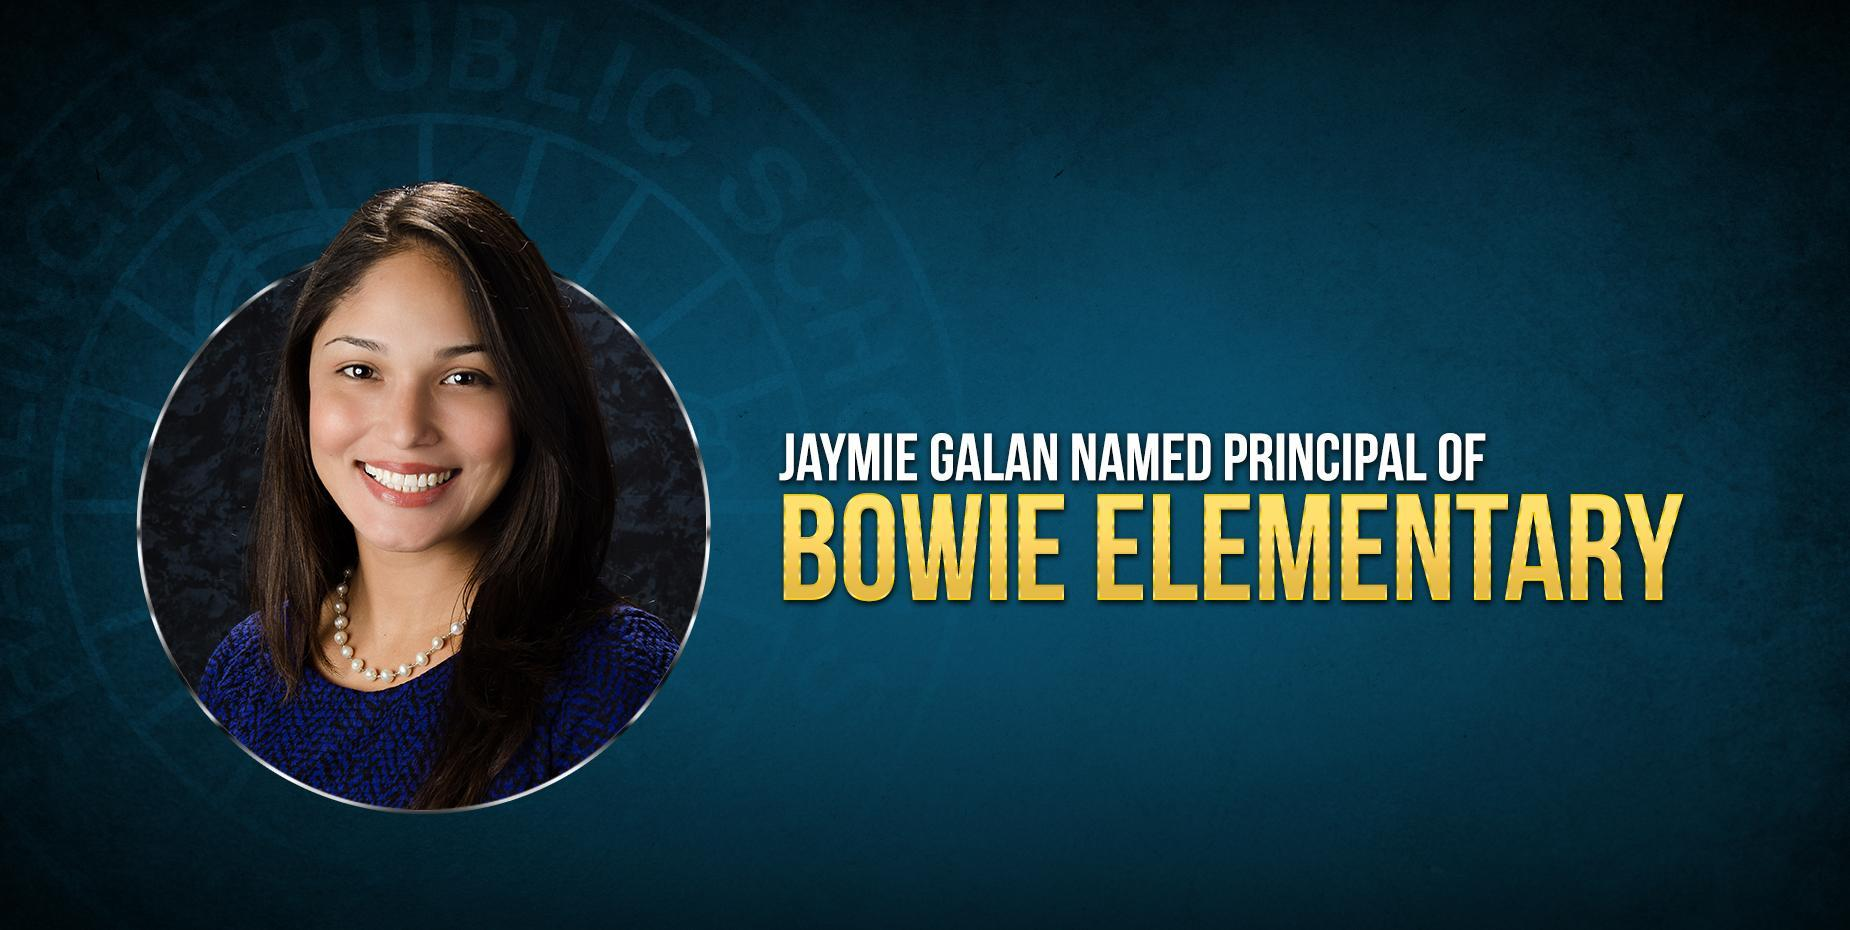 PHOTO OF NEW Bowie Elementary PRINCIPAL JAYMIE GALAN